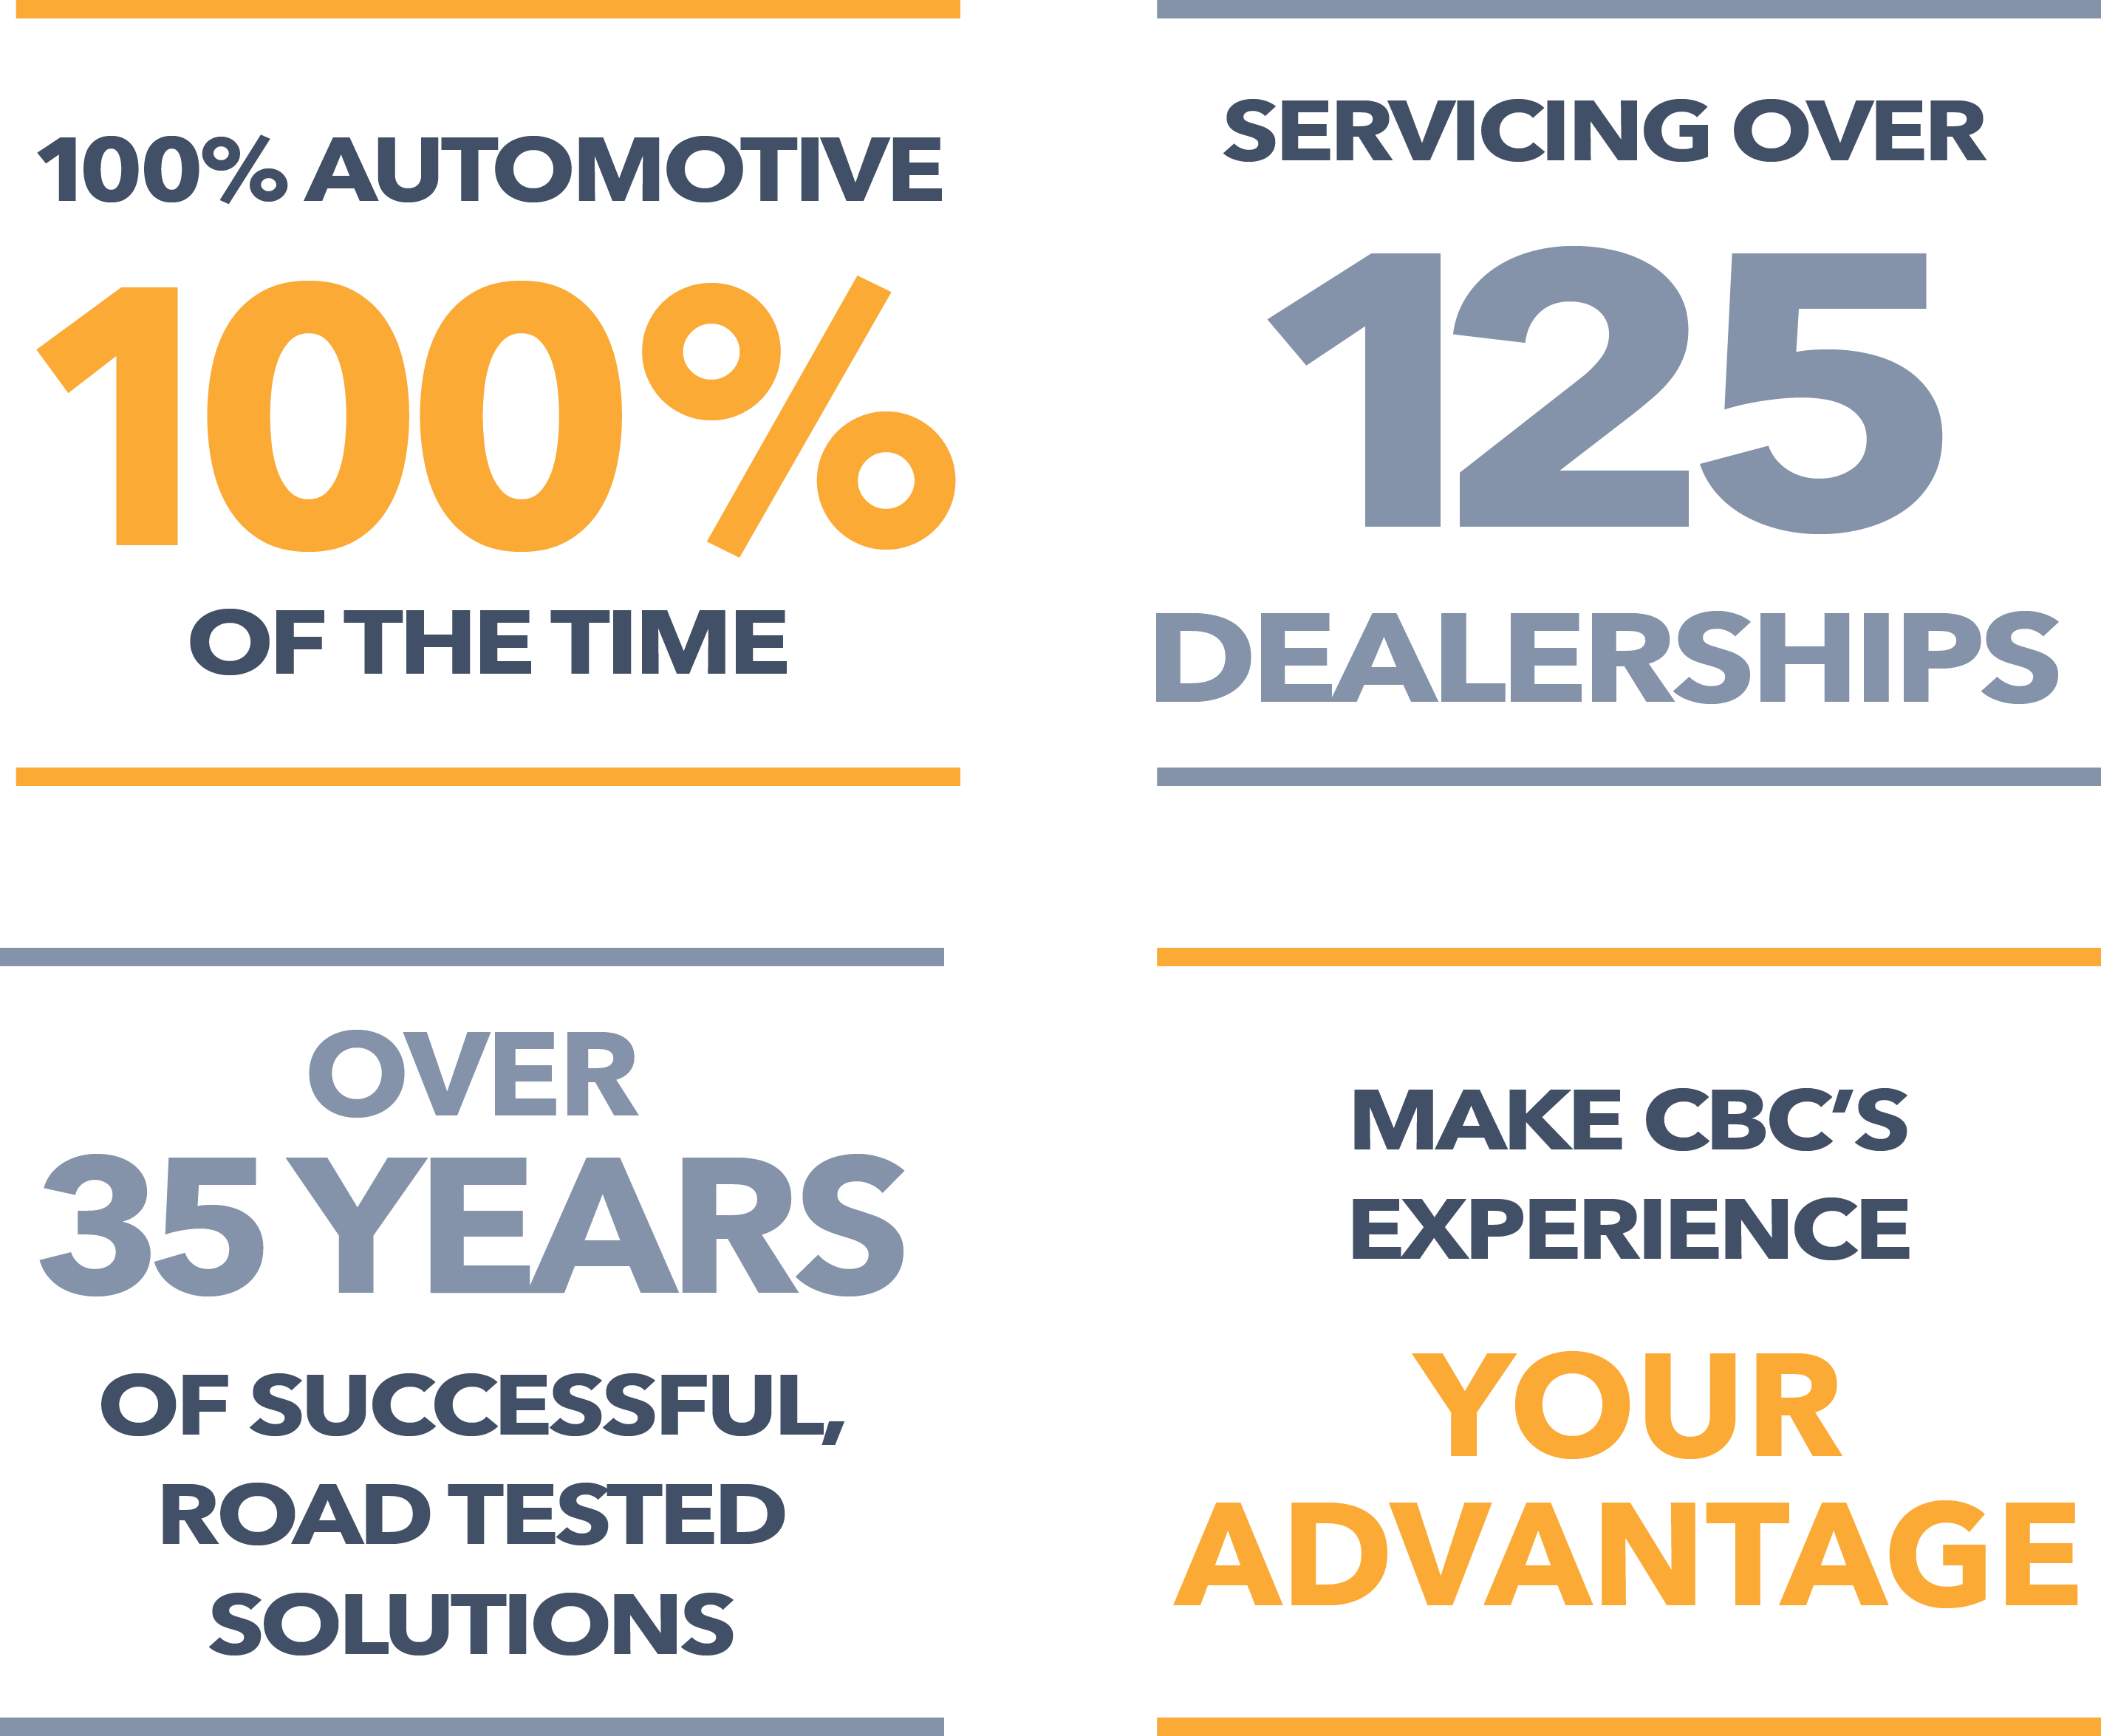 CBC Automotive Marketing